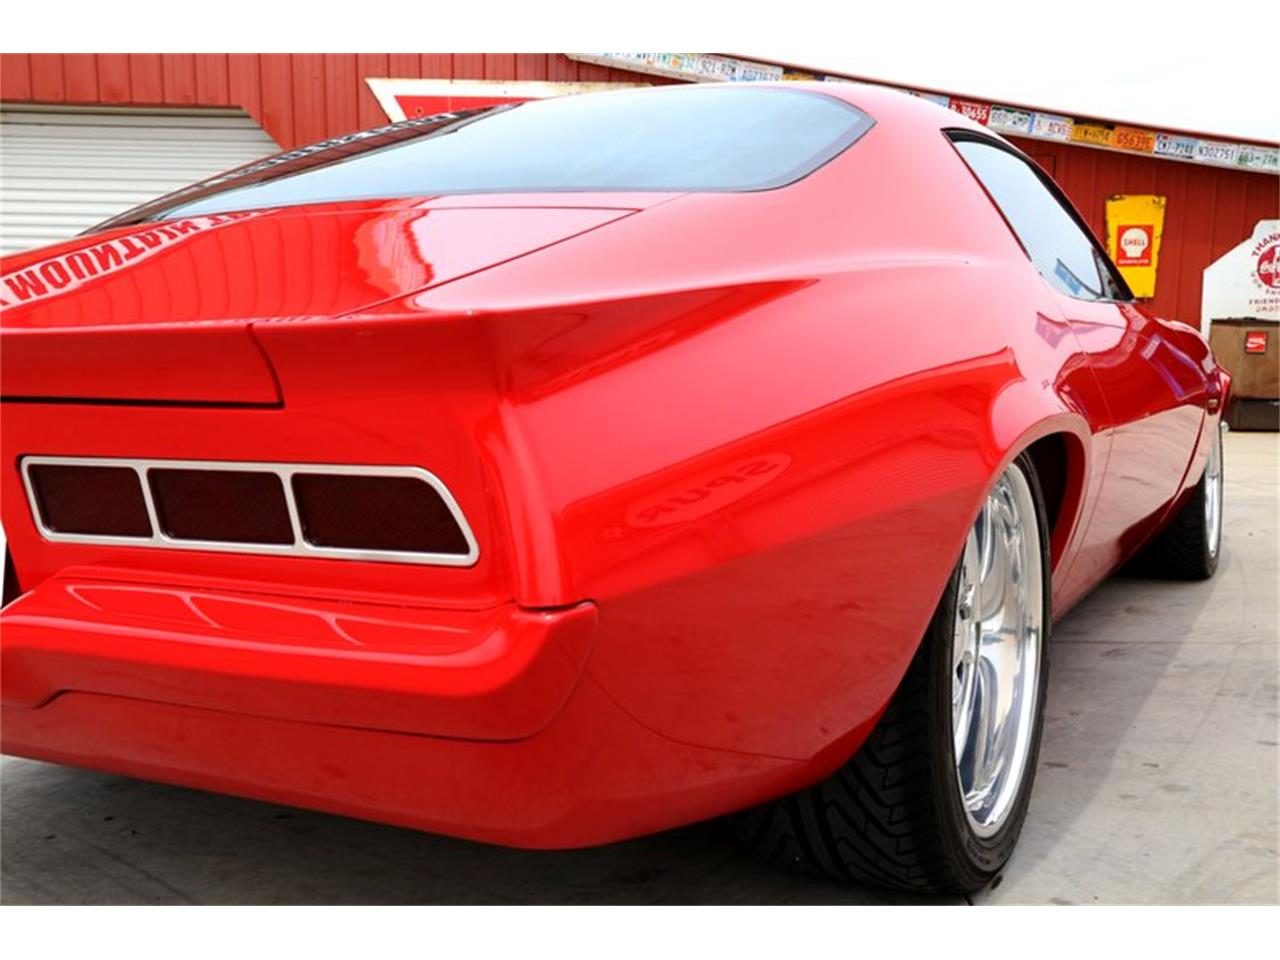 Large Picture of Classic 1970 Camaro located in Tennessee - $79,999.00 Offered by Smoky Mountain Traders - HC27